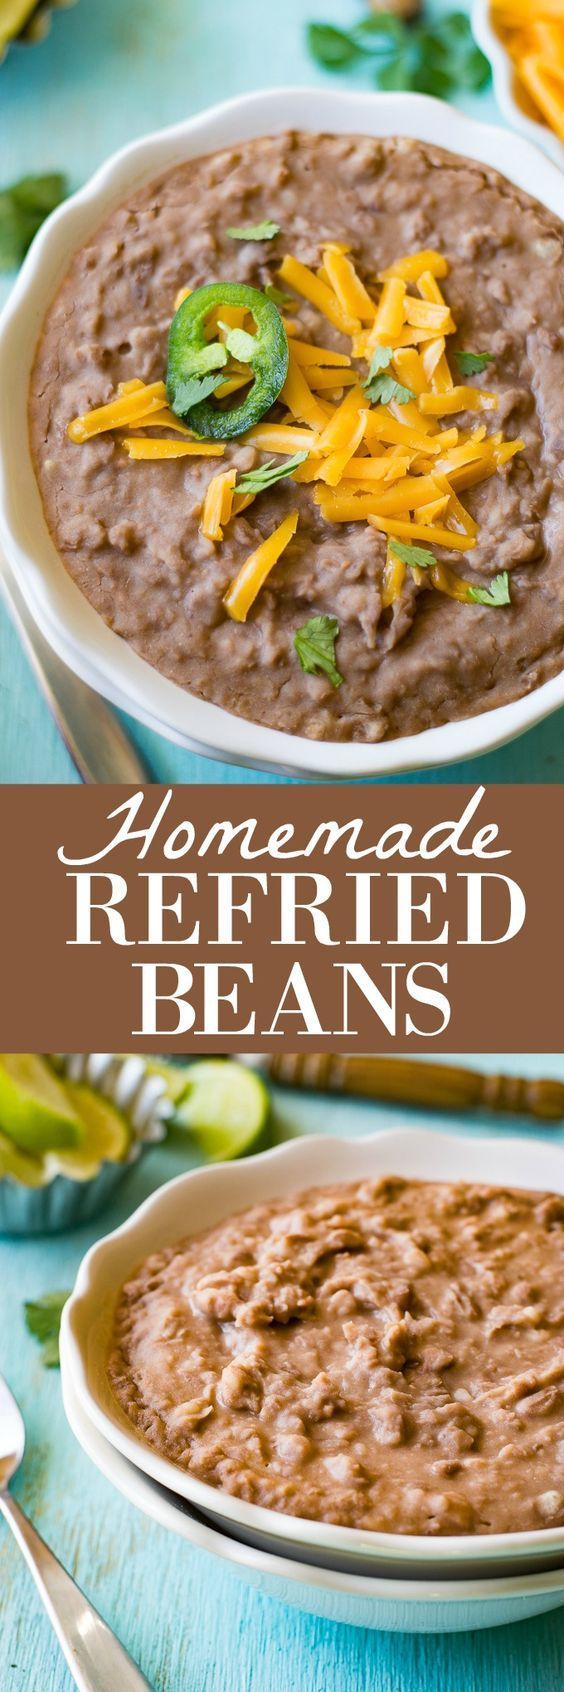 ... refried beans korean style refried beans toast with refried beans and